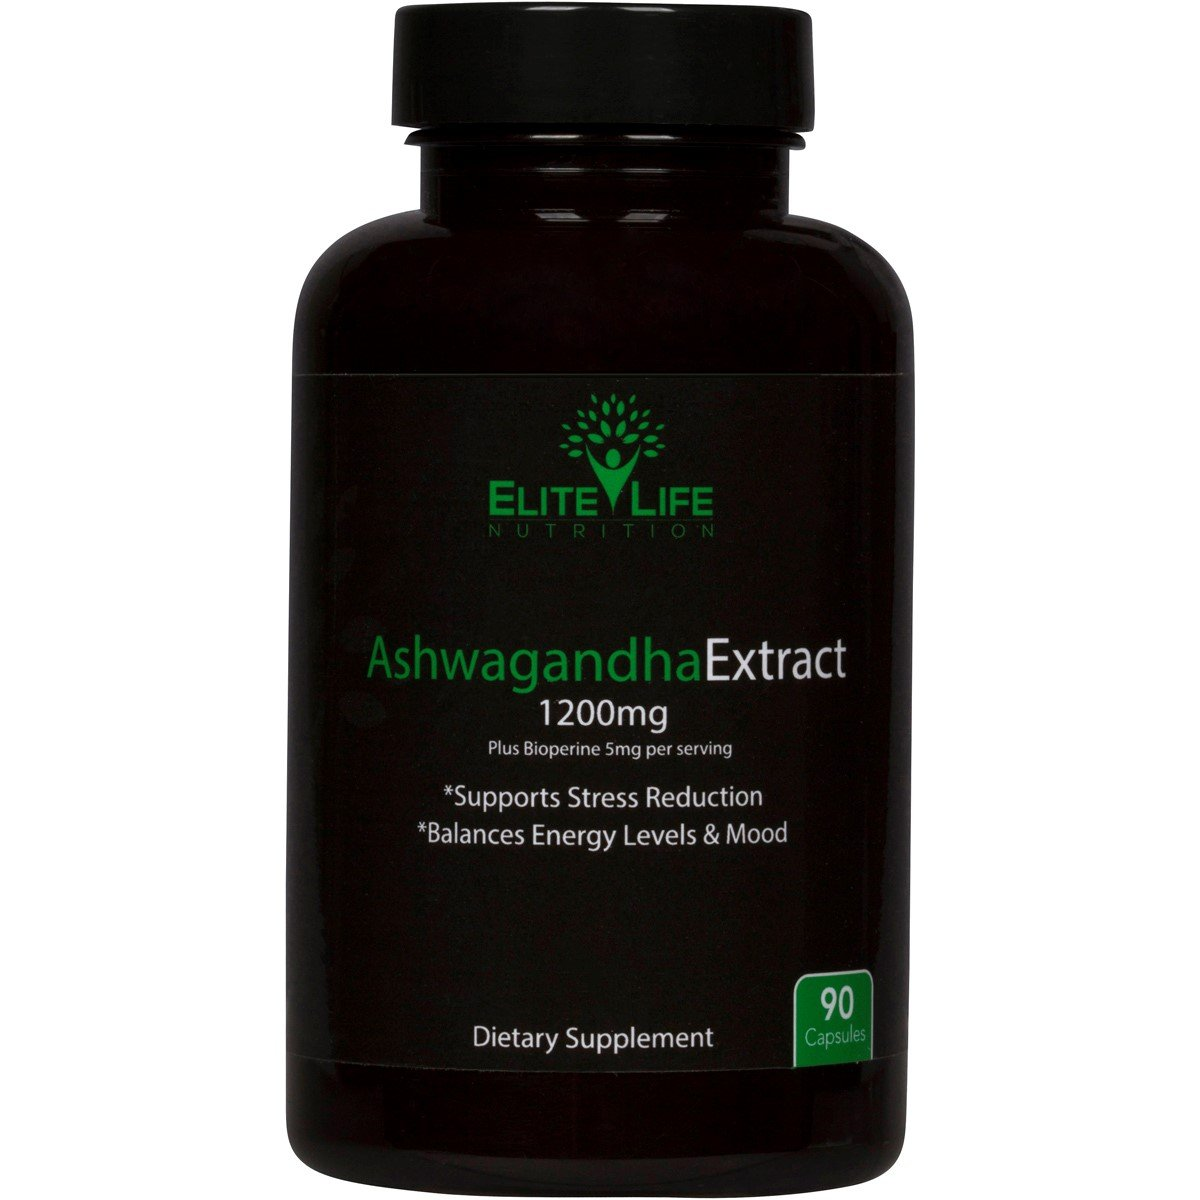 Pure Ashwagandha Extract 1200mg - With Bioperine 5mg - Best Natural Ashwagandha Root Extract for Men and Women - Supports Stress Levels, Energy, Sleep, and Mood - Withania Somnifera Herb - 90 Capsules by Elite Life Nutrition